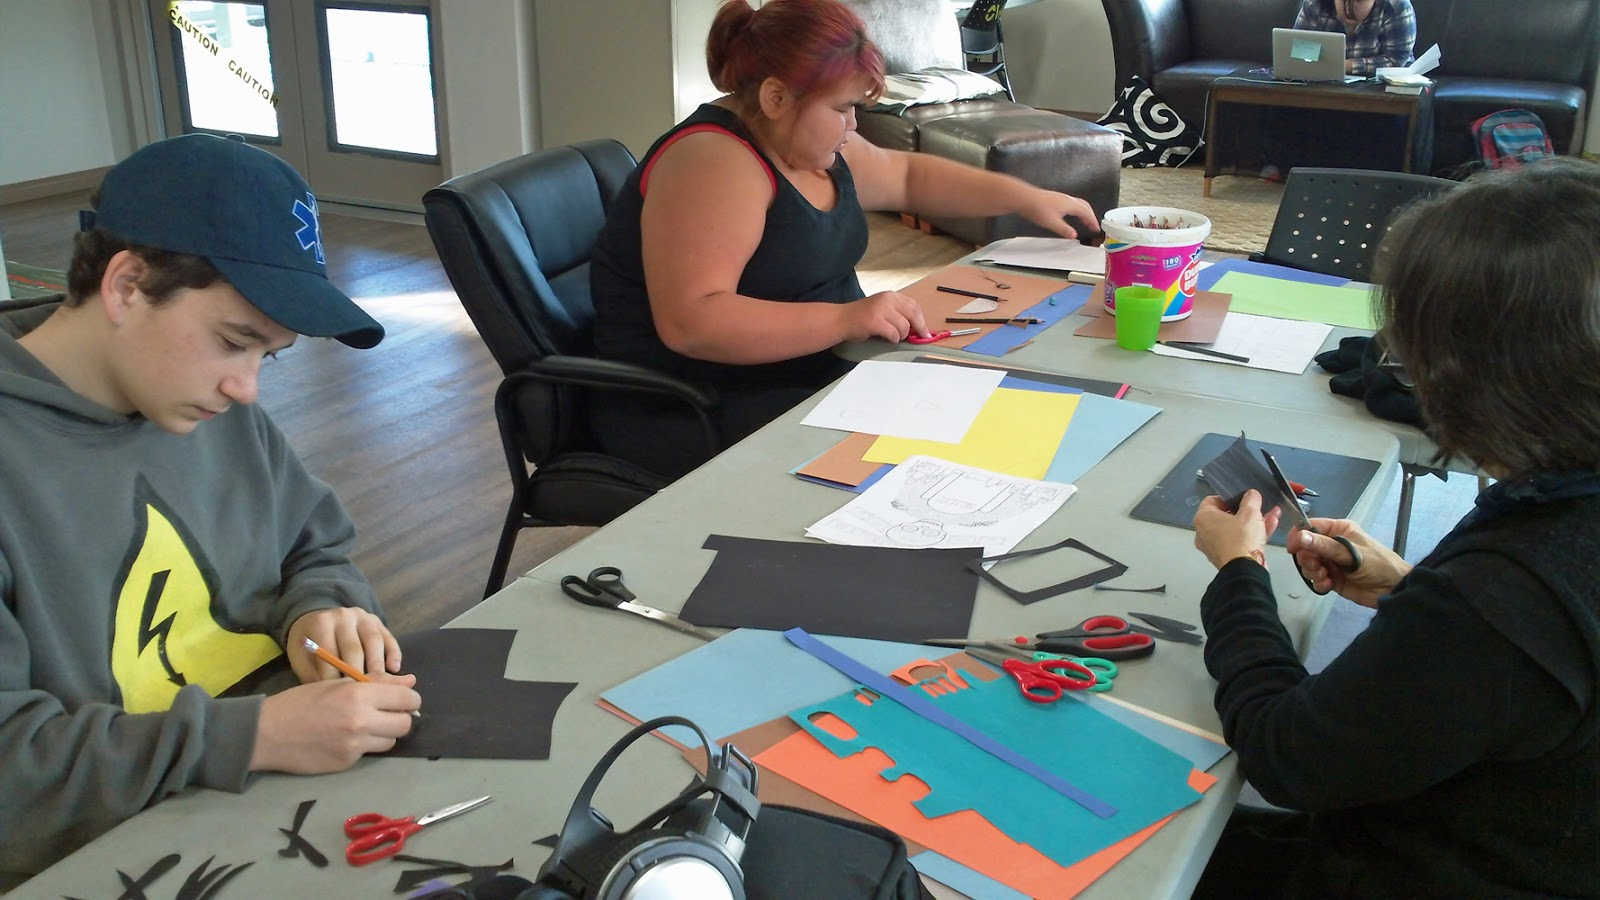 Sawyer and mentor Tracy create a spider while Natalia work on backgrounds